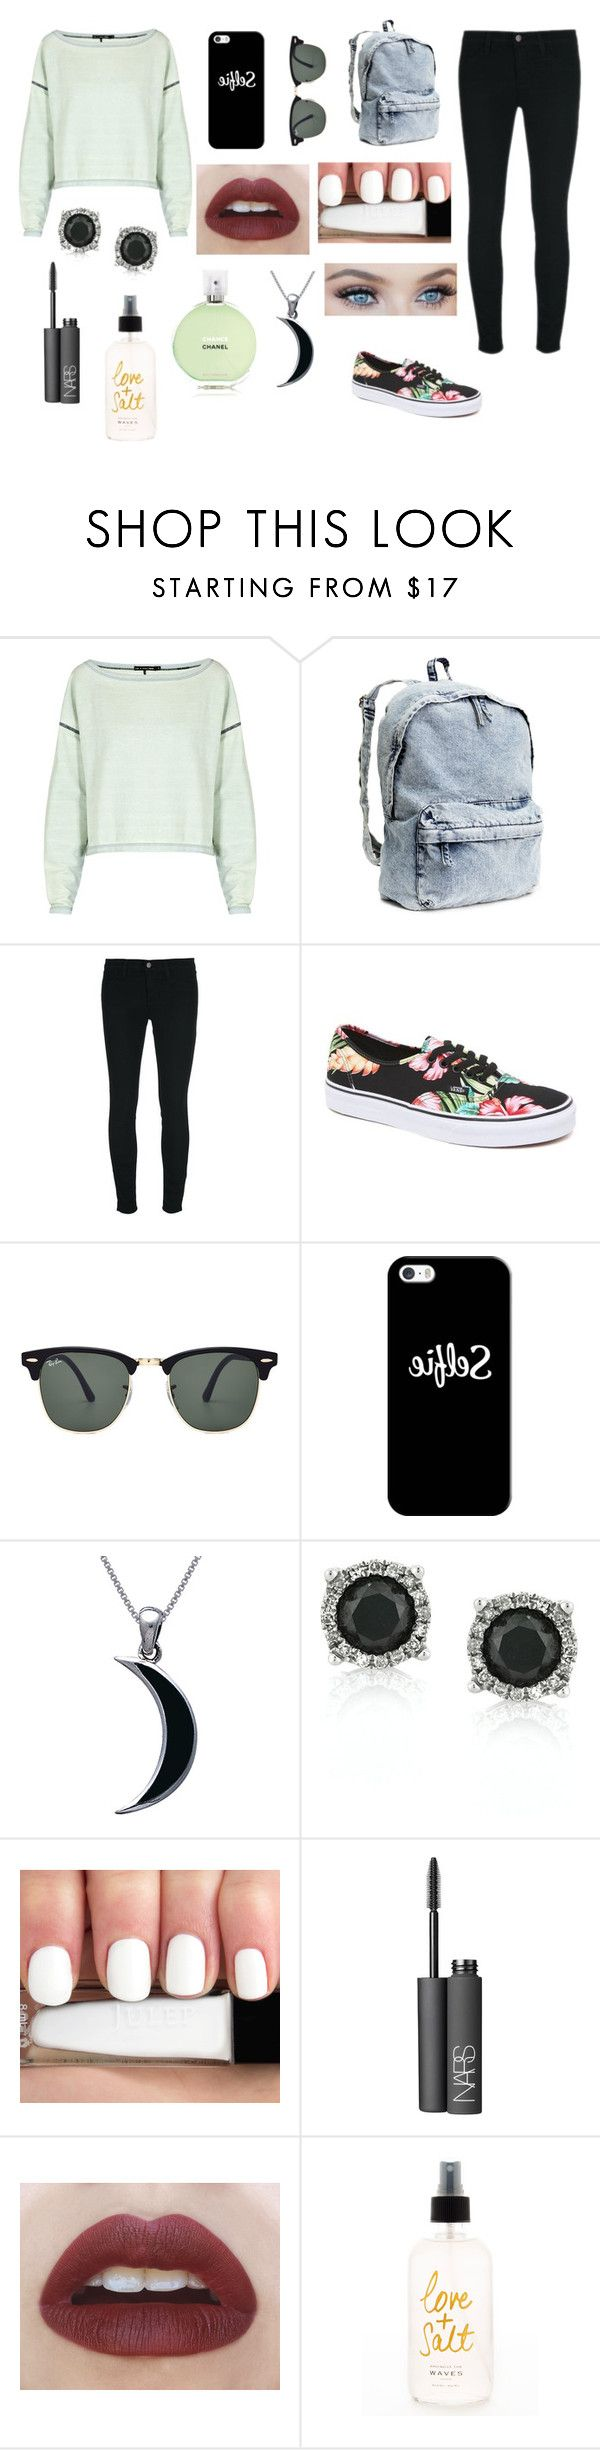 """""""When your on your period outfit 😬😬"""" by mymash1995 ❤ liked on Polyvore featuring rag & bone, H&M, J Brand, Vans, Ray-Ban, Casetify, Carolina Glamour Collection, Mark Broumand, NARS Cosmetics and Haze"""